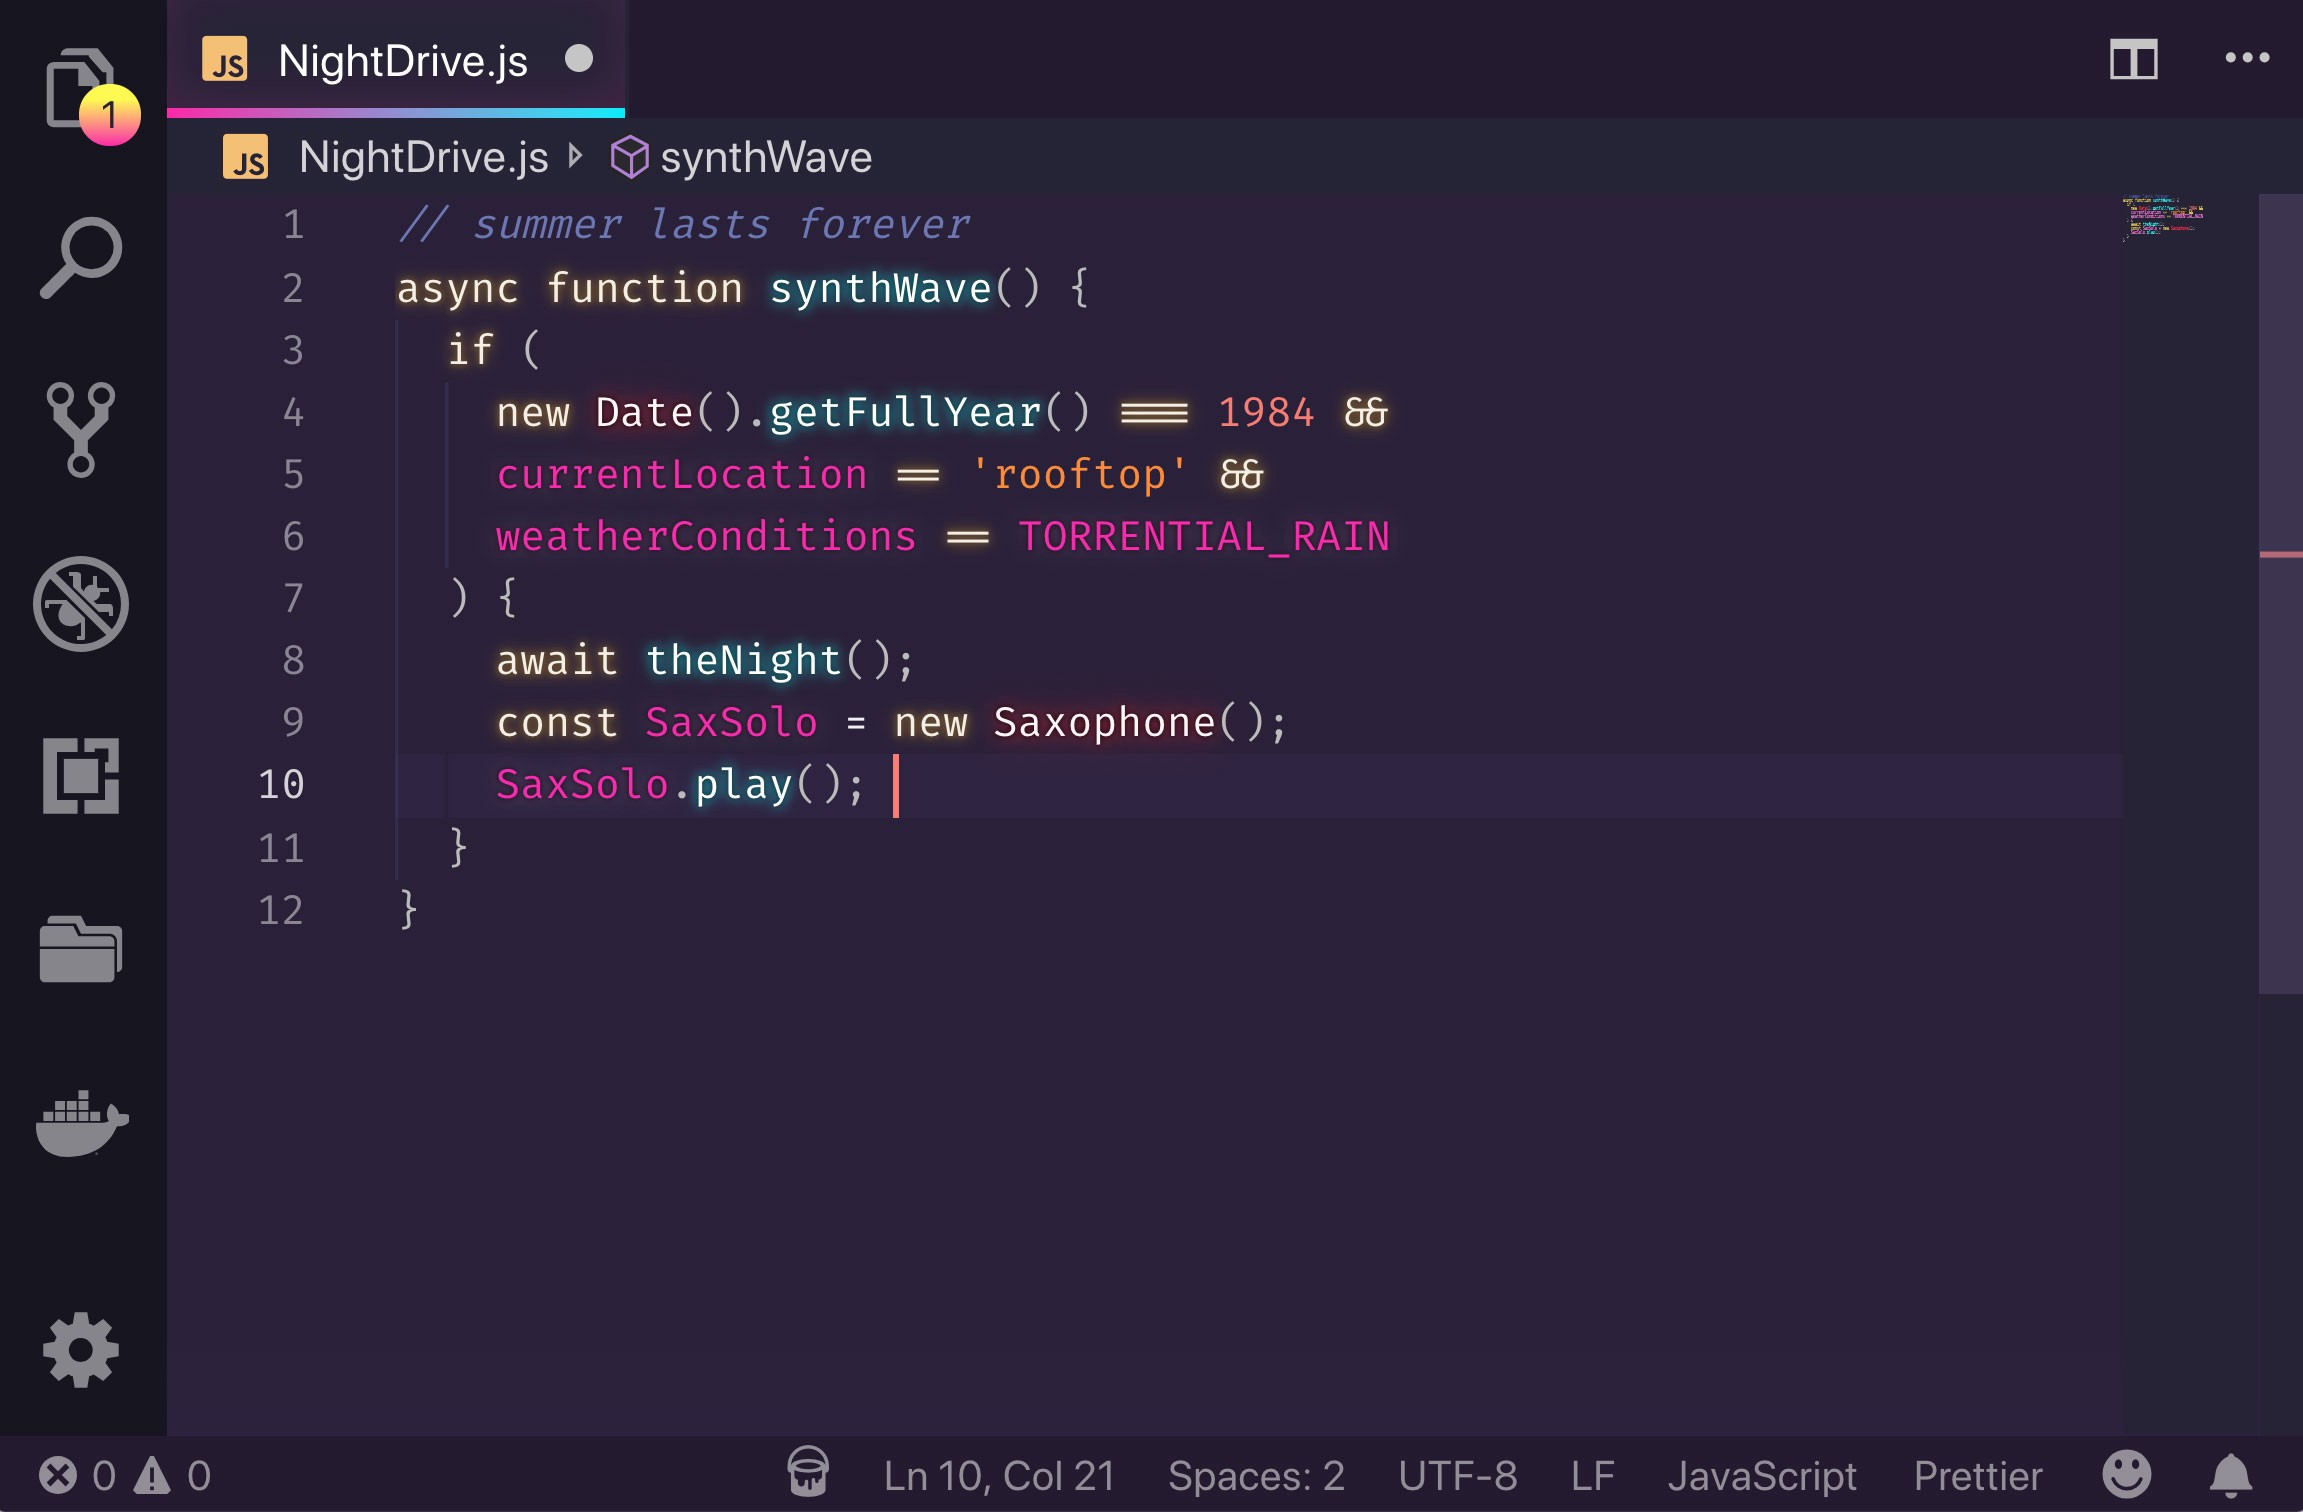 8 Awesome Themes For Visual Studio Code By Indrek Lasn Better Programming Medium